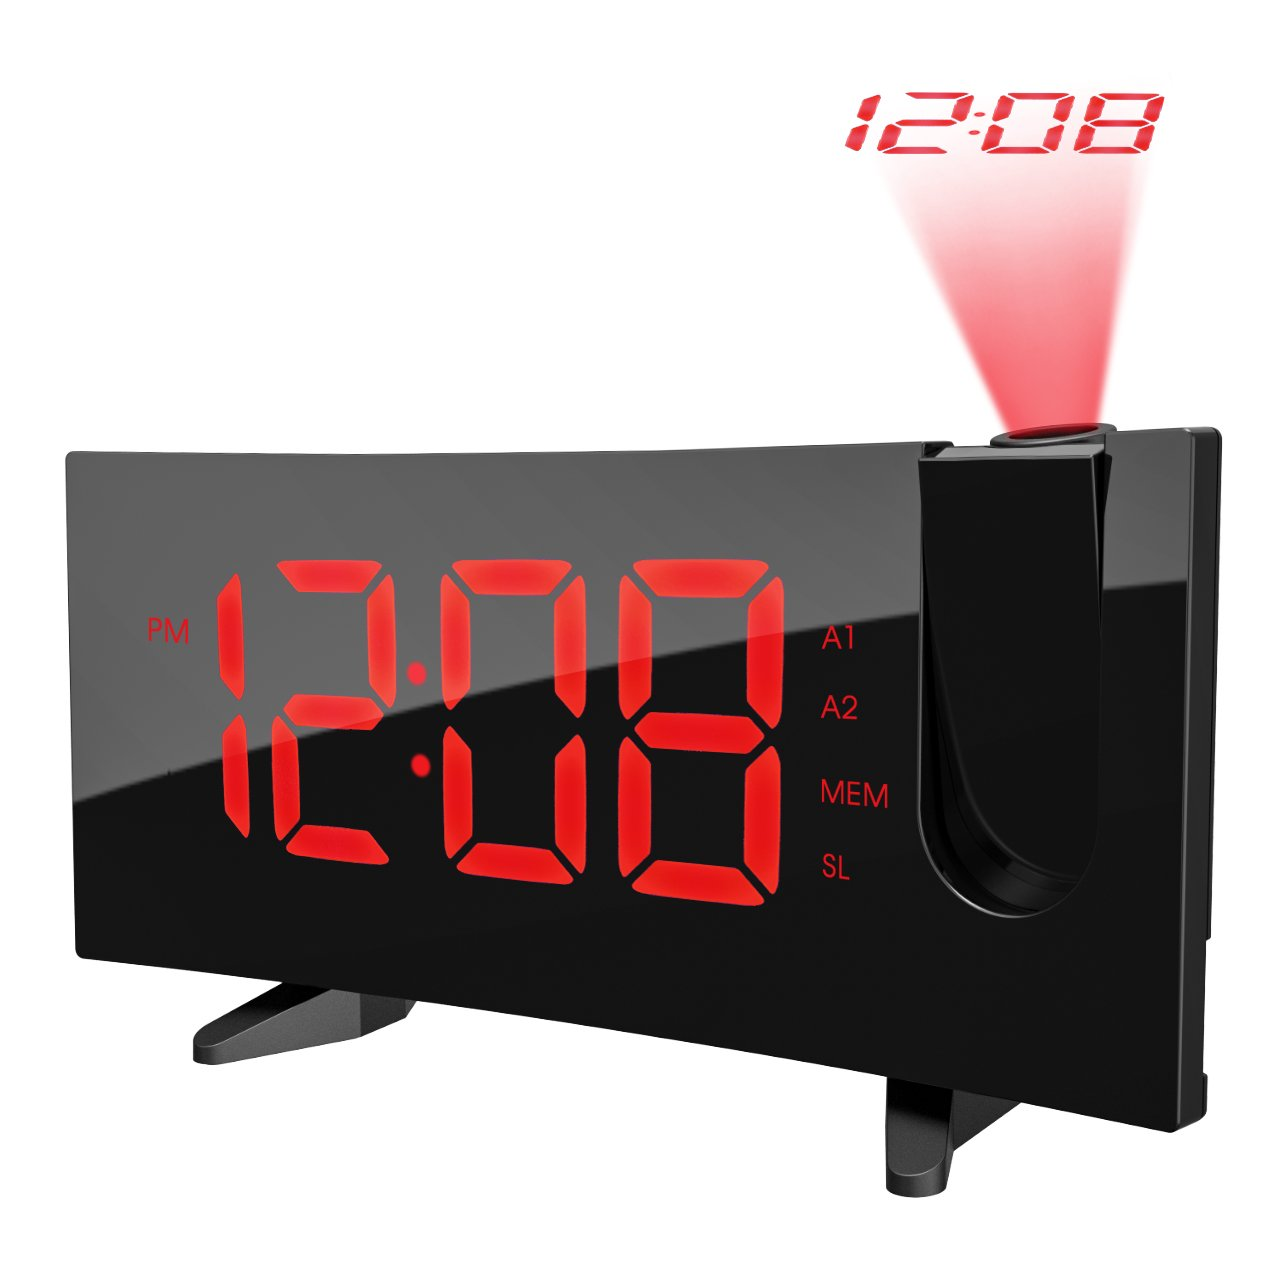 PICTEK Projection Alarm Clock, 5'' Curved LED Display with Dimmer, Adjustable Ceiling Sleep Timer for Kids Bedrooms, FM Radio, 12/24 Hour, Snooze, Power Adapter Black and Red by PICTEK